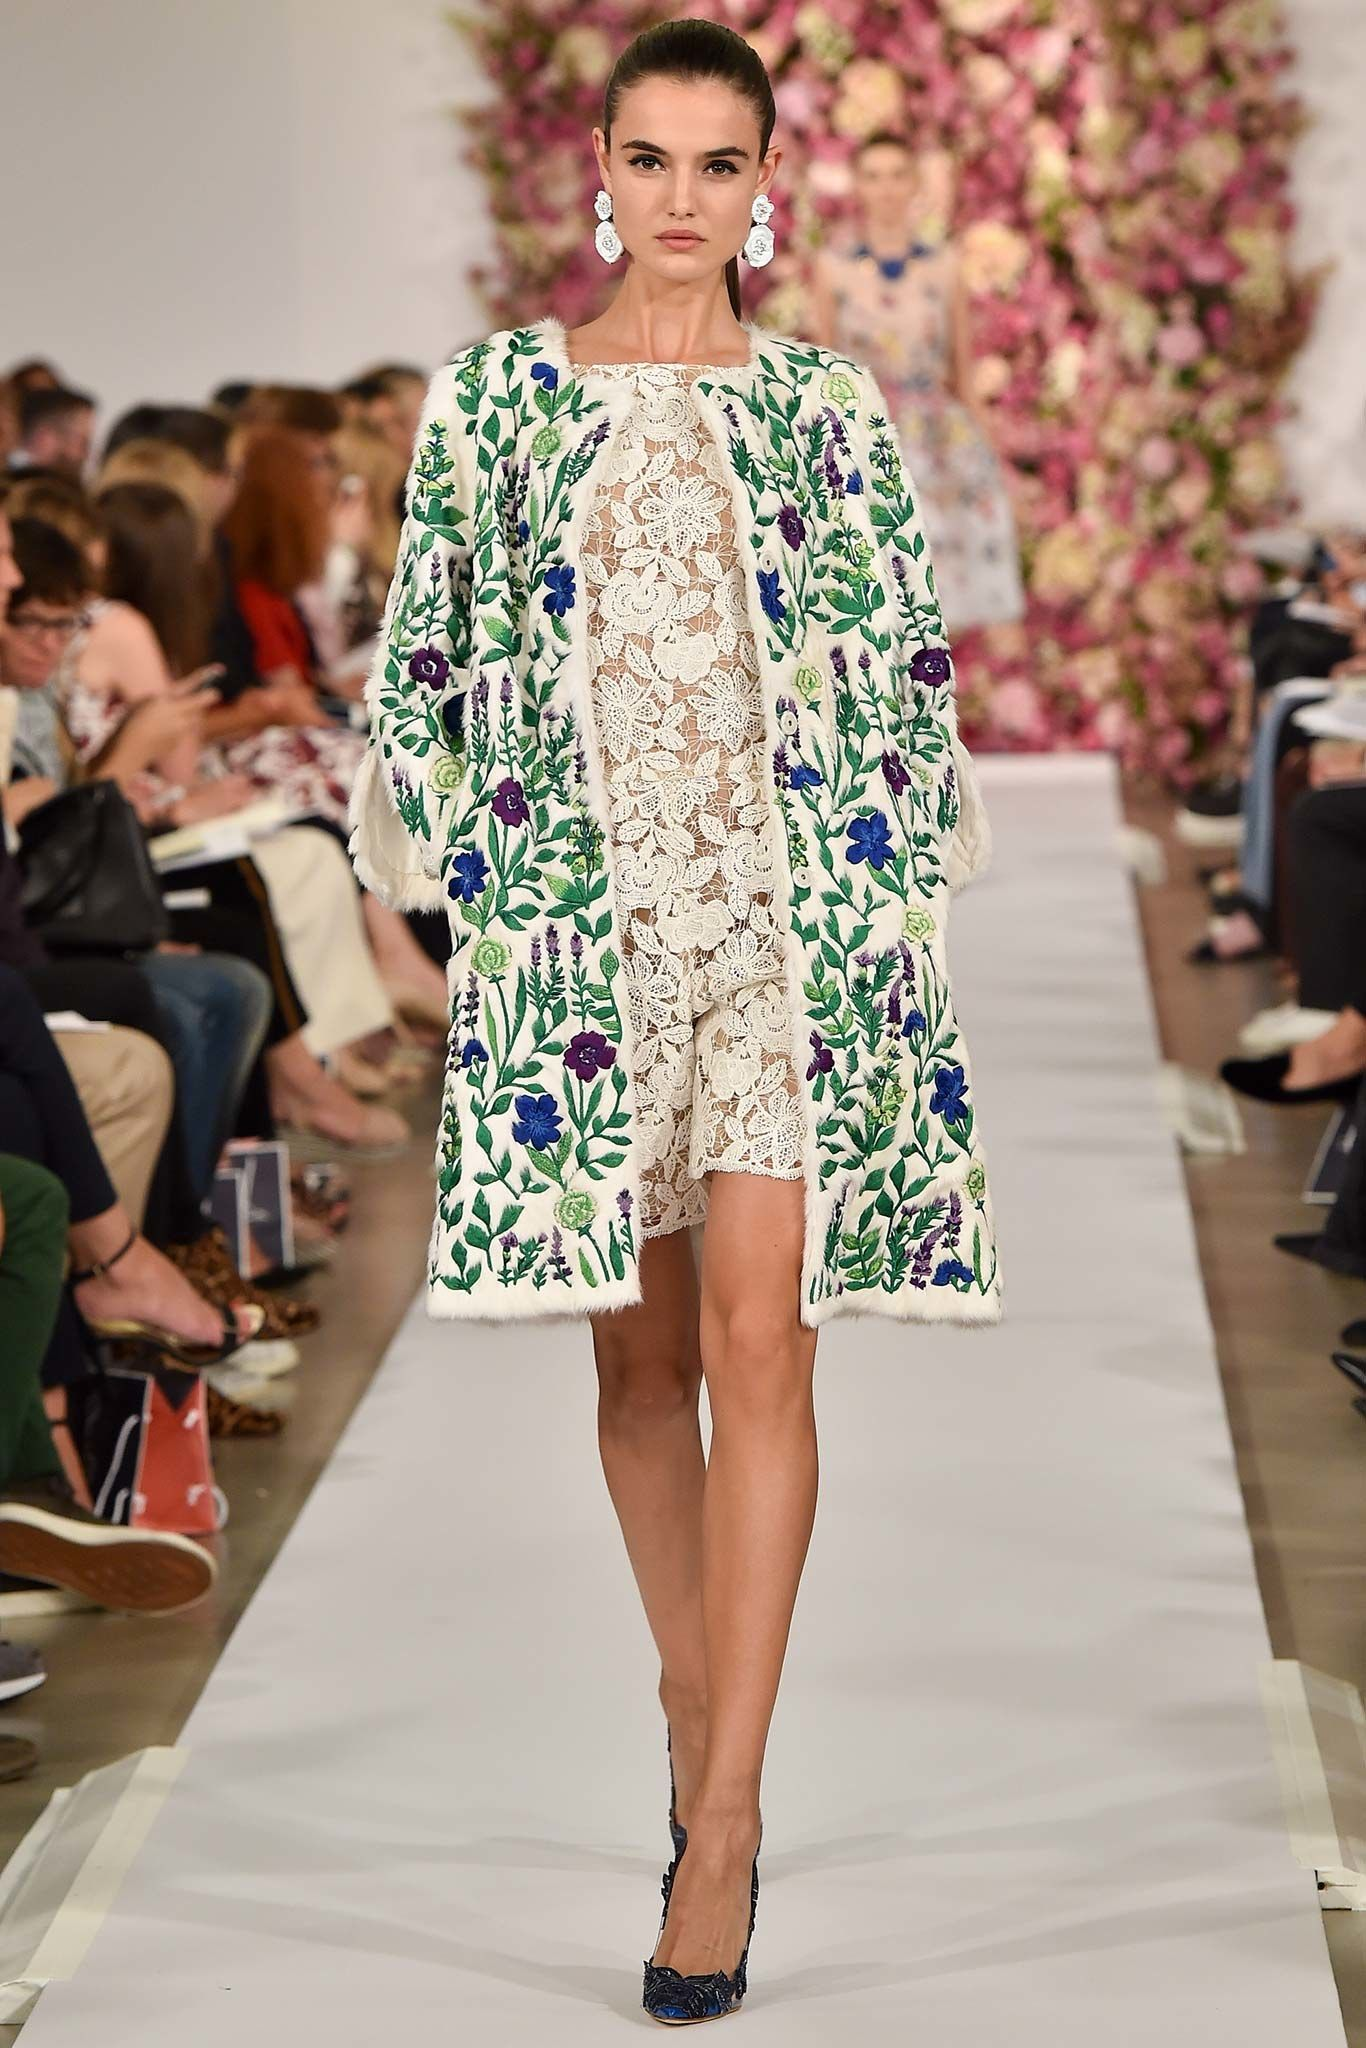 a6736c05f Oscar de la Renta's spring 2015 ready-to-wear collection featured many  bight flower patterns that look very art nouveau. The bright blues, greens,  ...